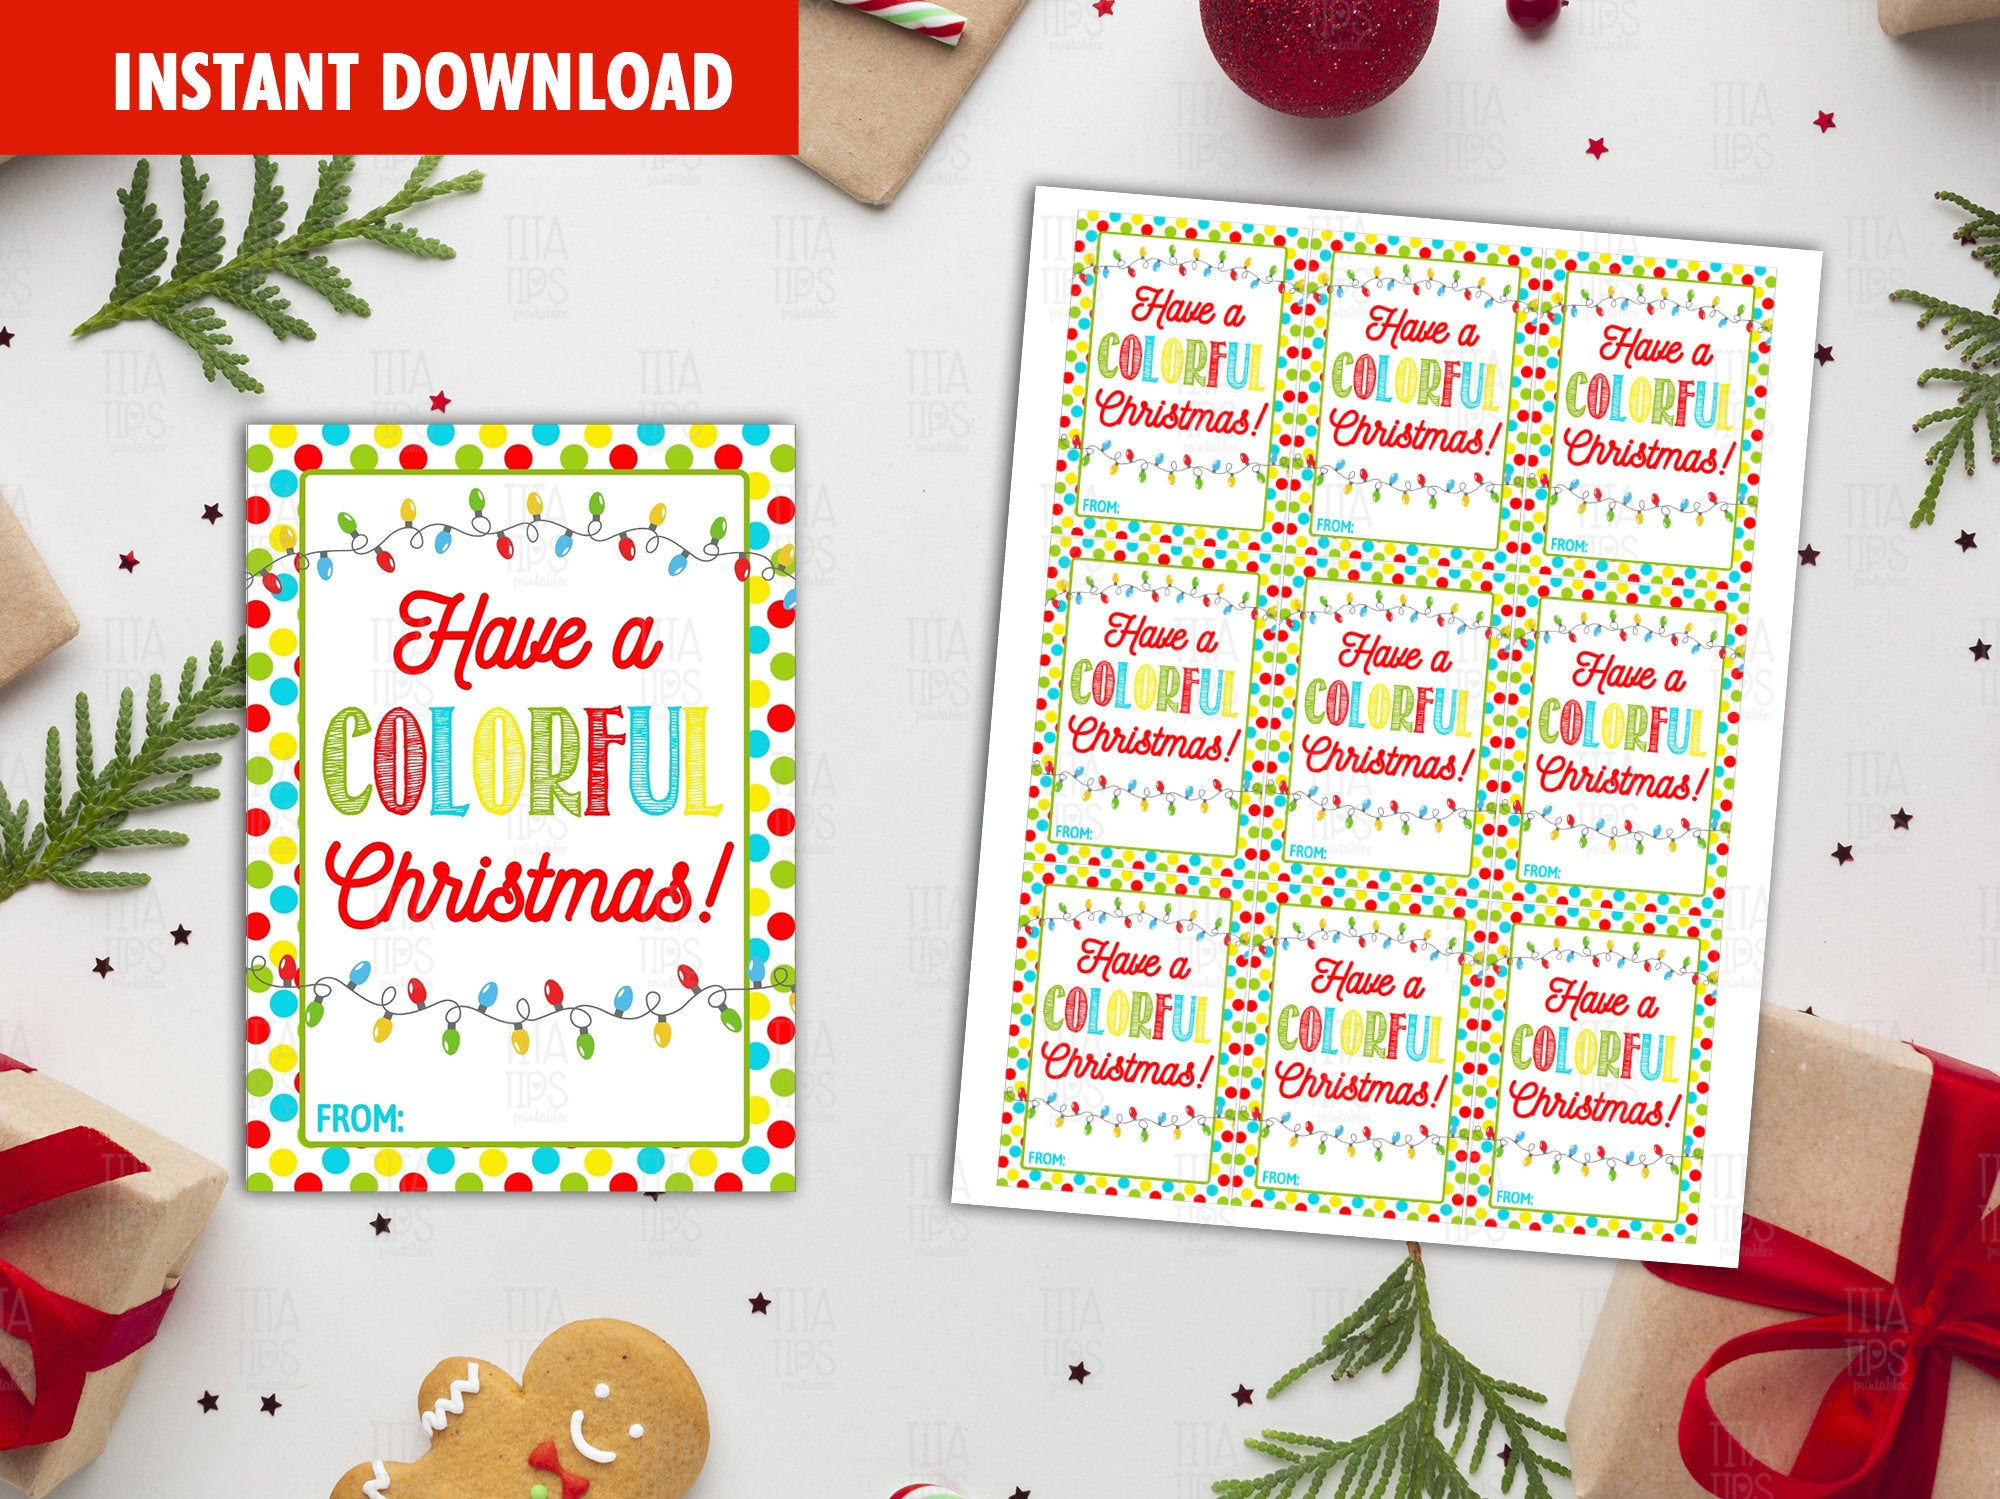 Have a Colorful Christmas Favor Tags, Christmas Lights Bulbs Printable Card, Instant Download - TitaTipsPrintables